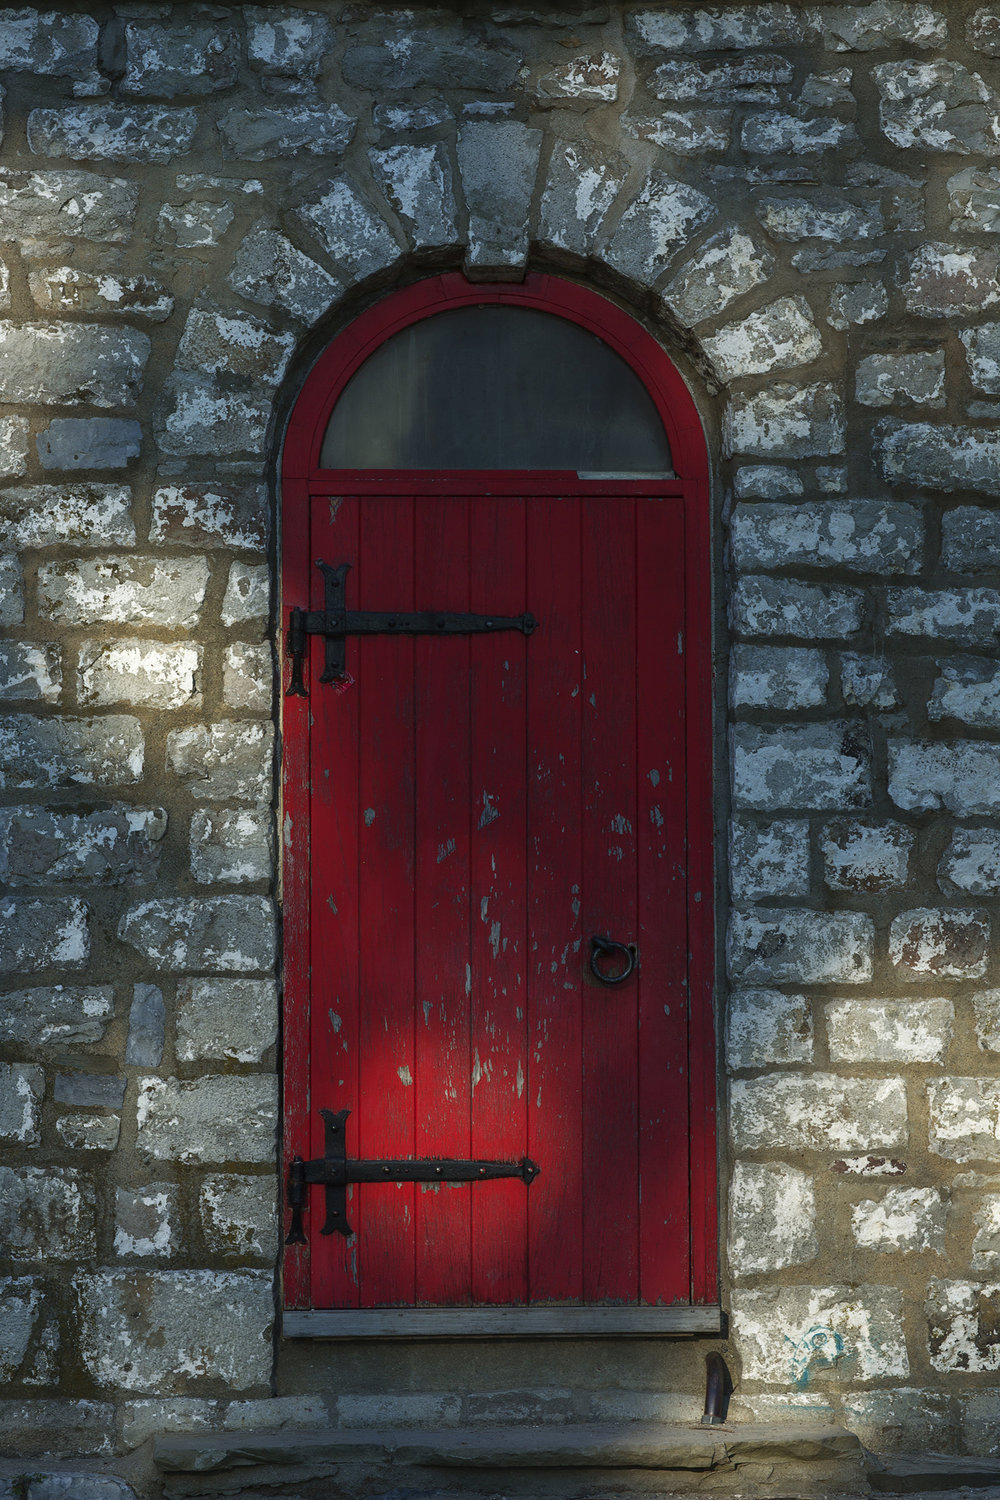 - behind the red door